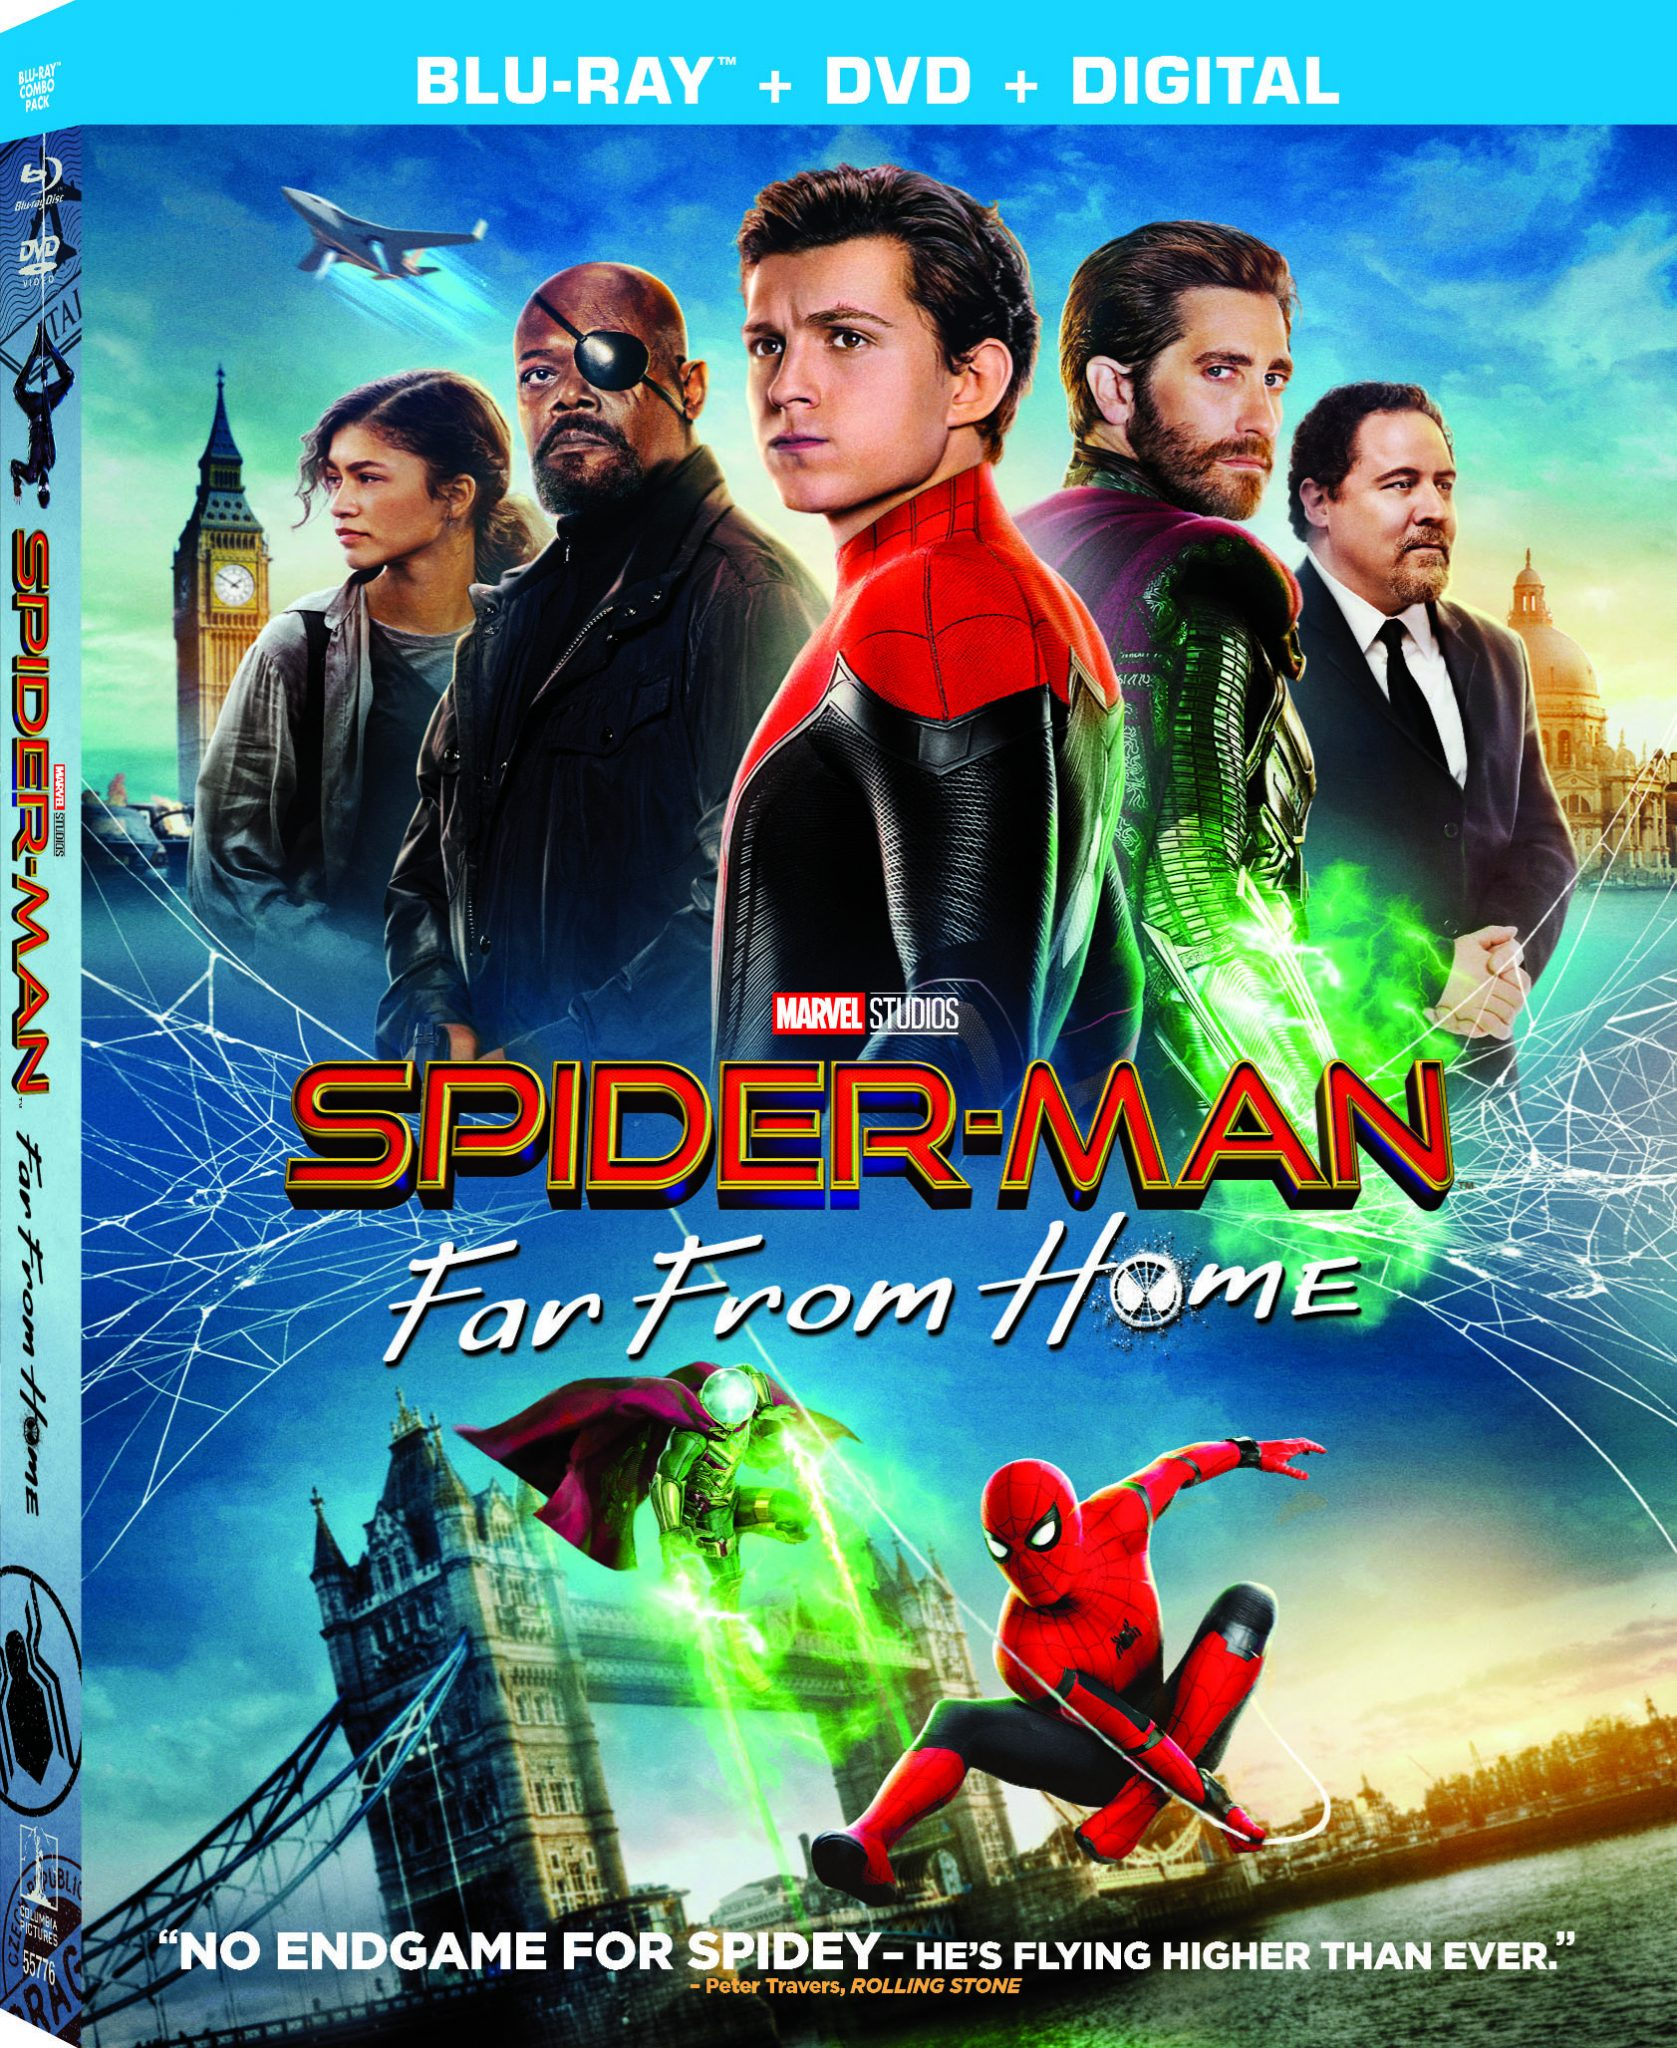 Spider-Man: Far From Home on Digital 9/17 & on 4K Ultra HD Blu-ray™ & DVD 10/1 #SpiderManFarFromHome